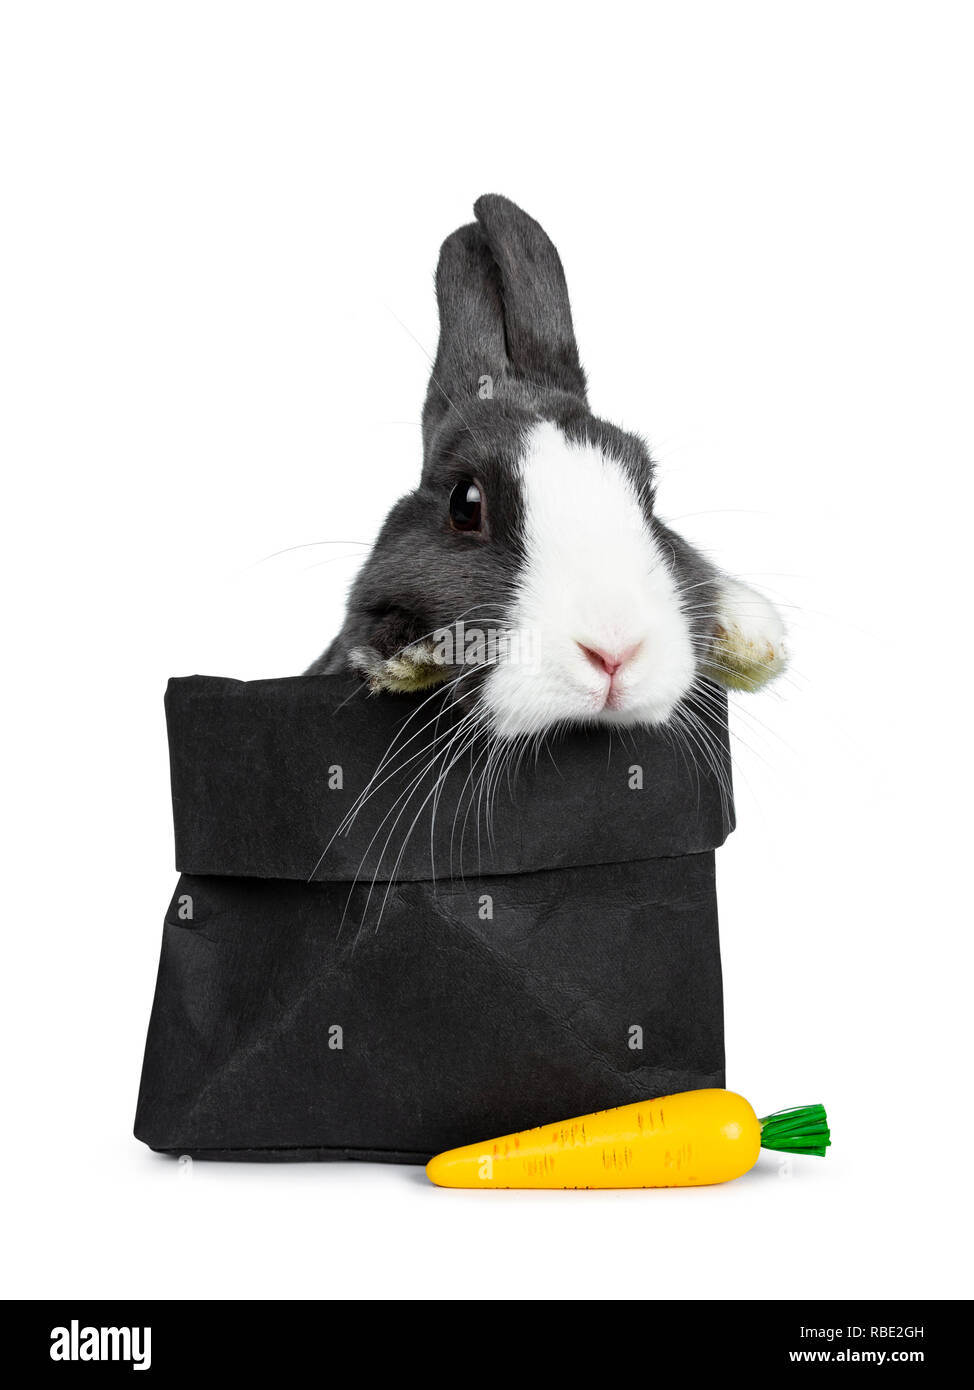 Cute grey with white European rabbit, Stting side ways in a black paper back with a fake carrot. Paws over edge. Looking at camera facing front. Isola - Stock Image